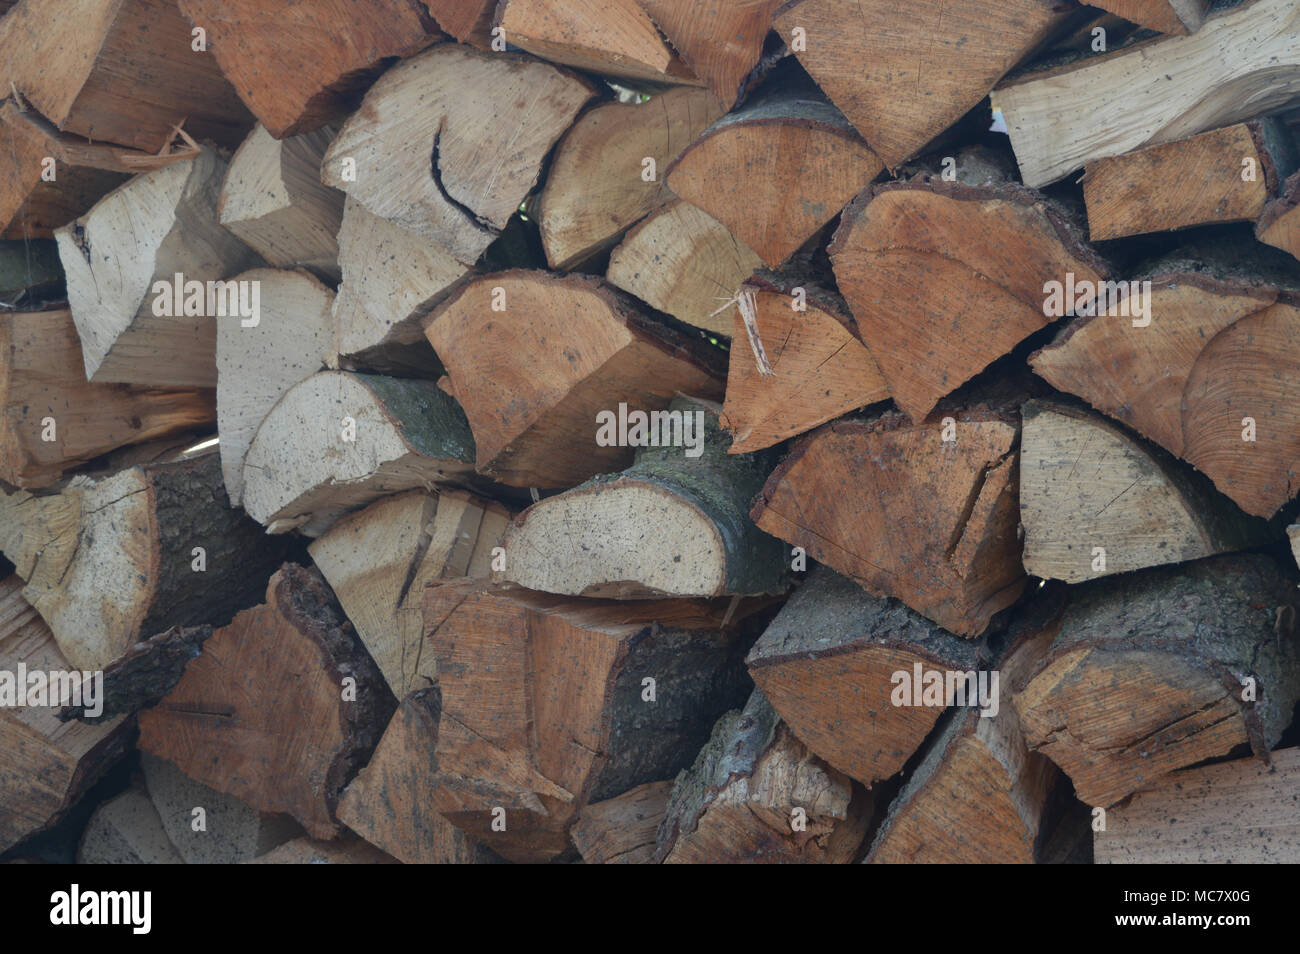 Woodblock For The Fire - Stock Image